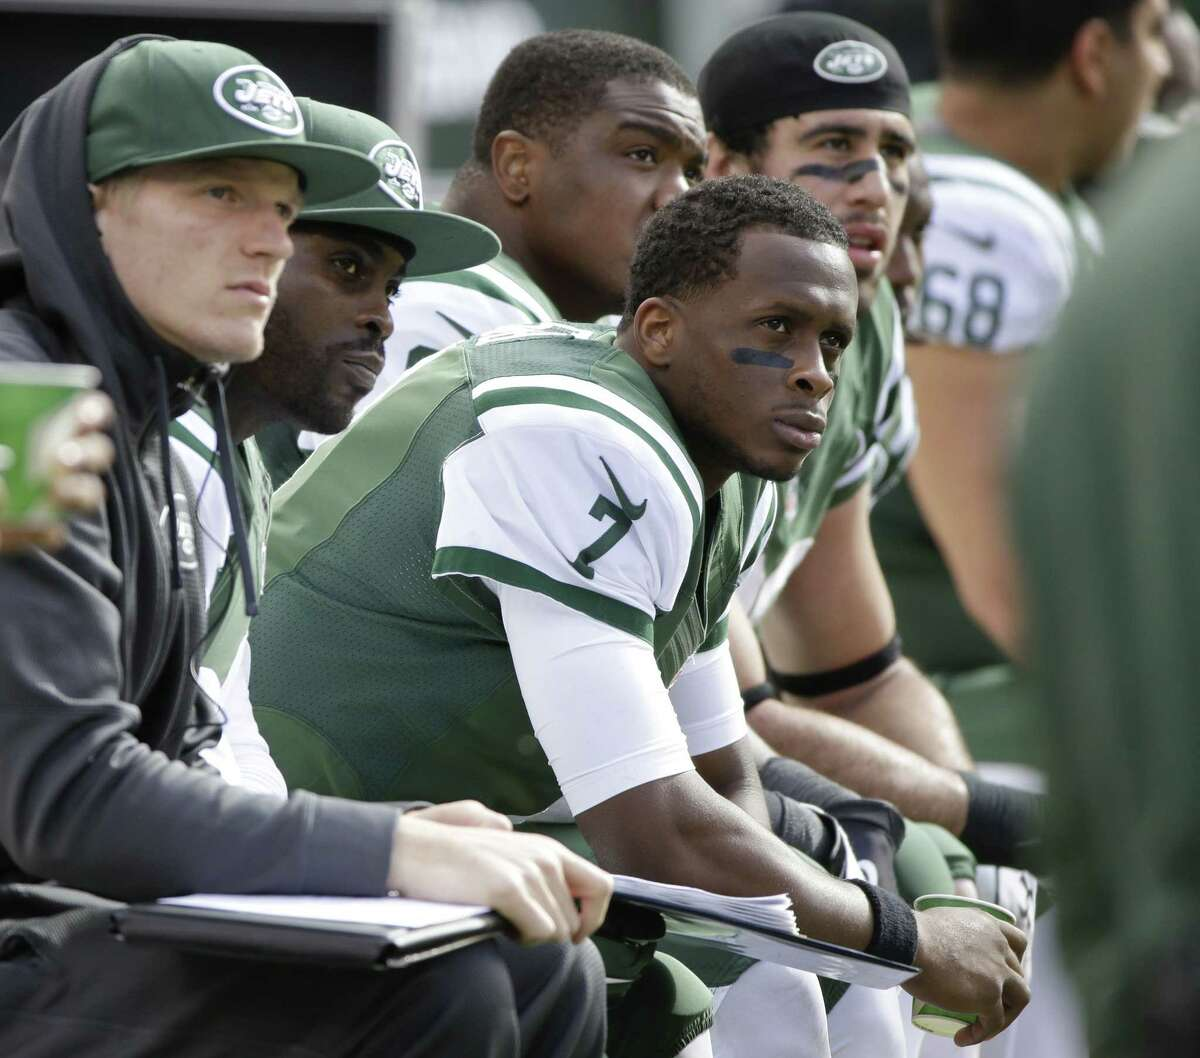 Jets quarterback Geno Smith (7) sits next to Michael Vick (1) during the first half of Sunday's game against the Bills.